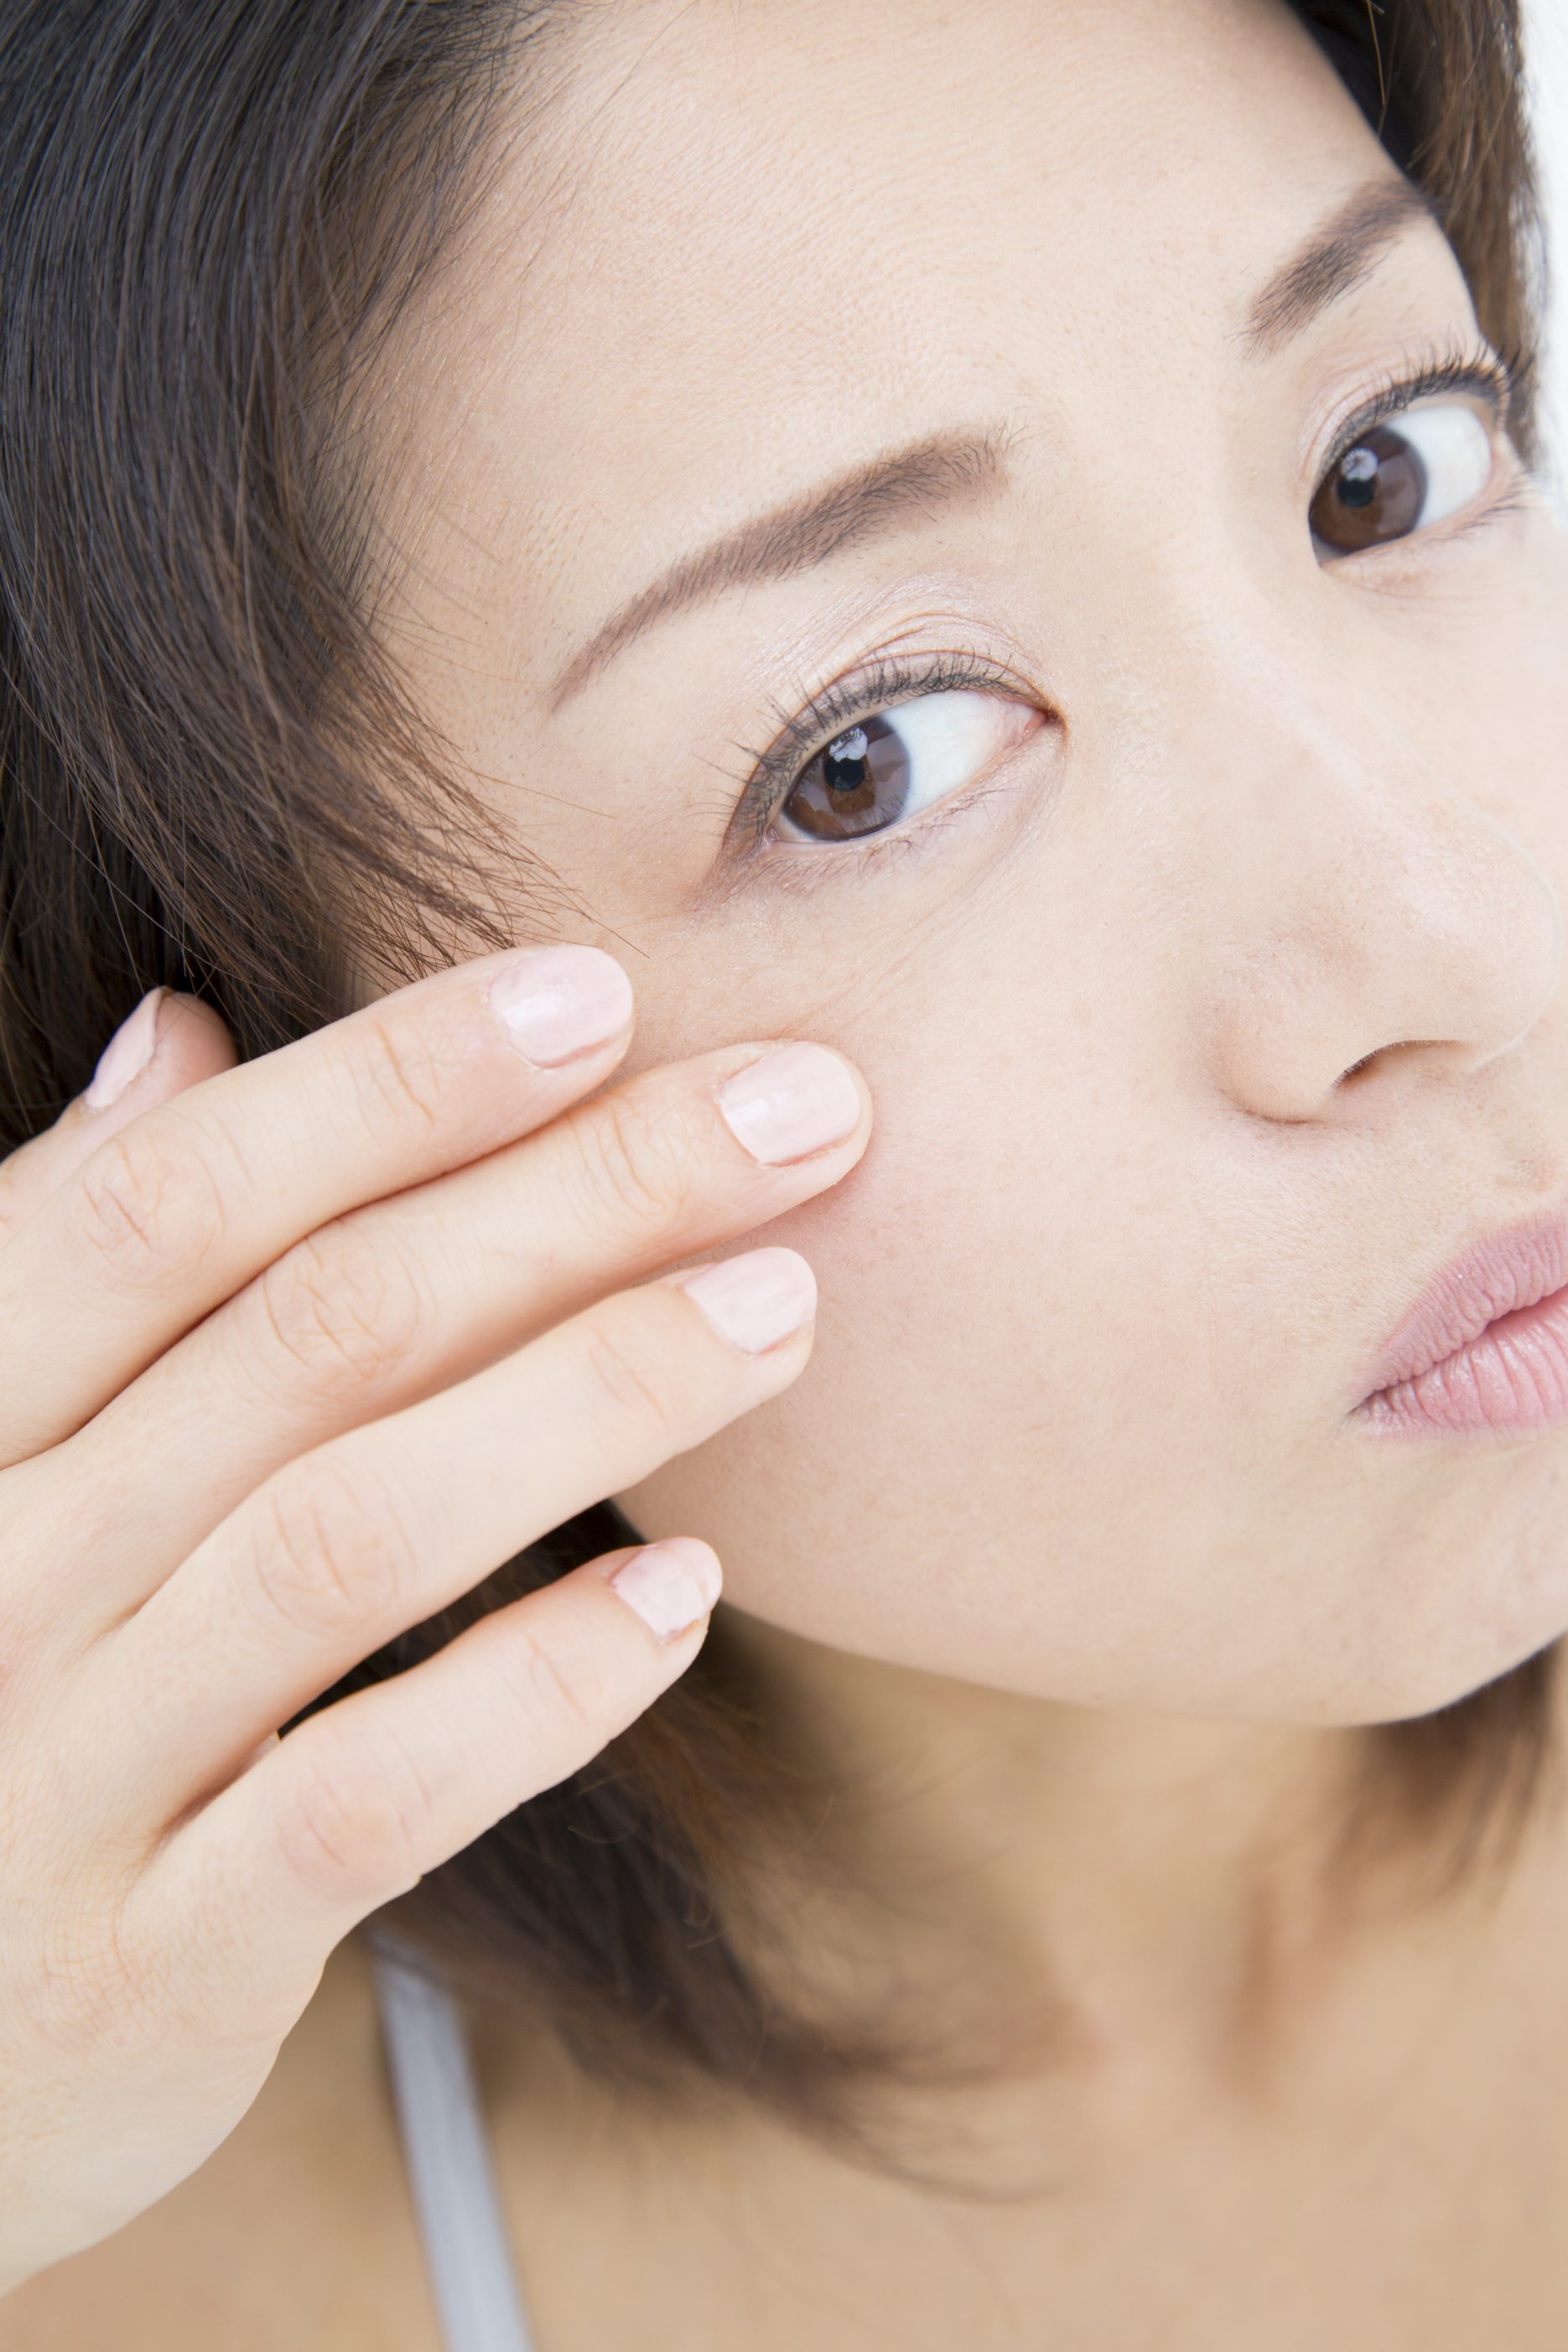 Japanese Anti-Aging Beauty Products